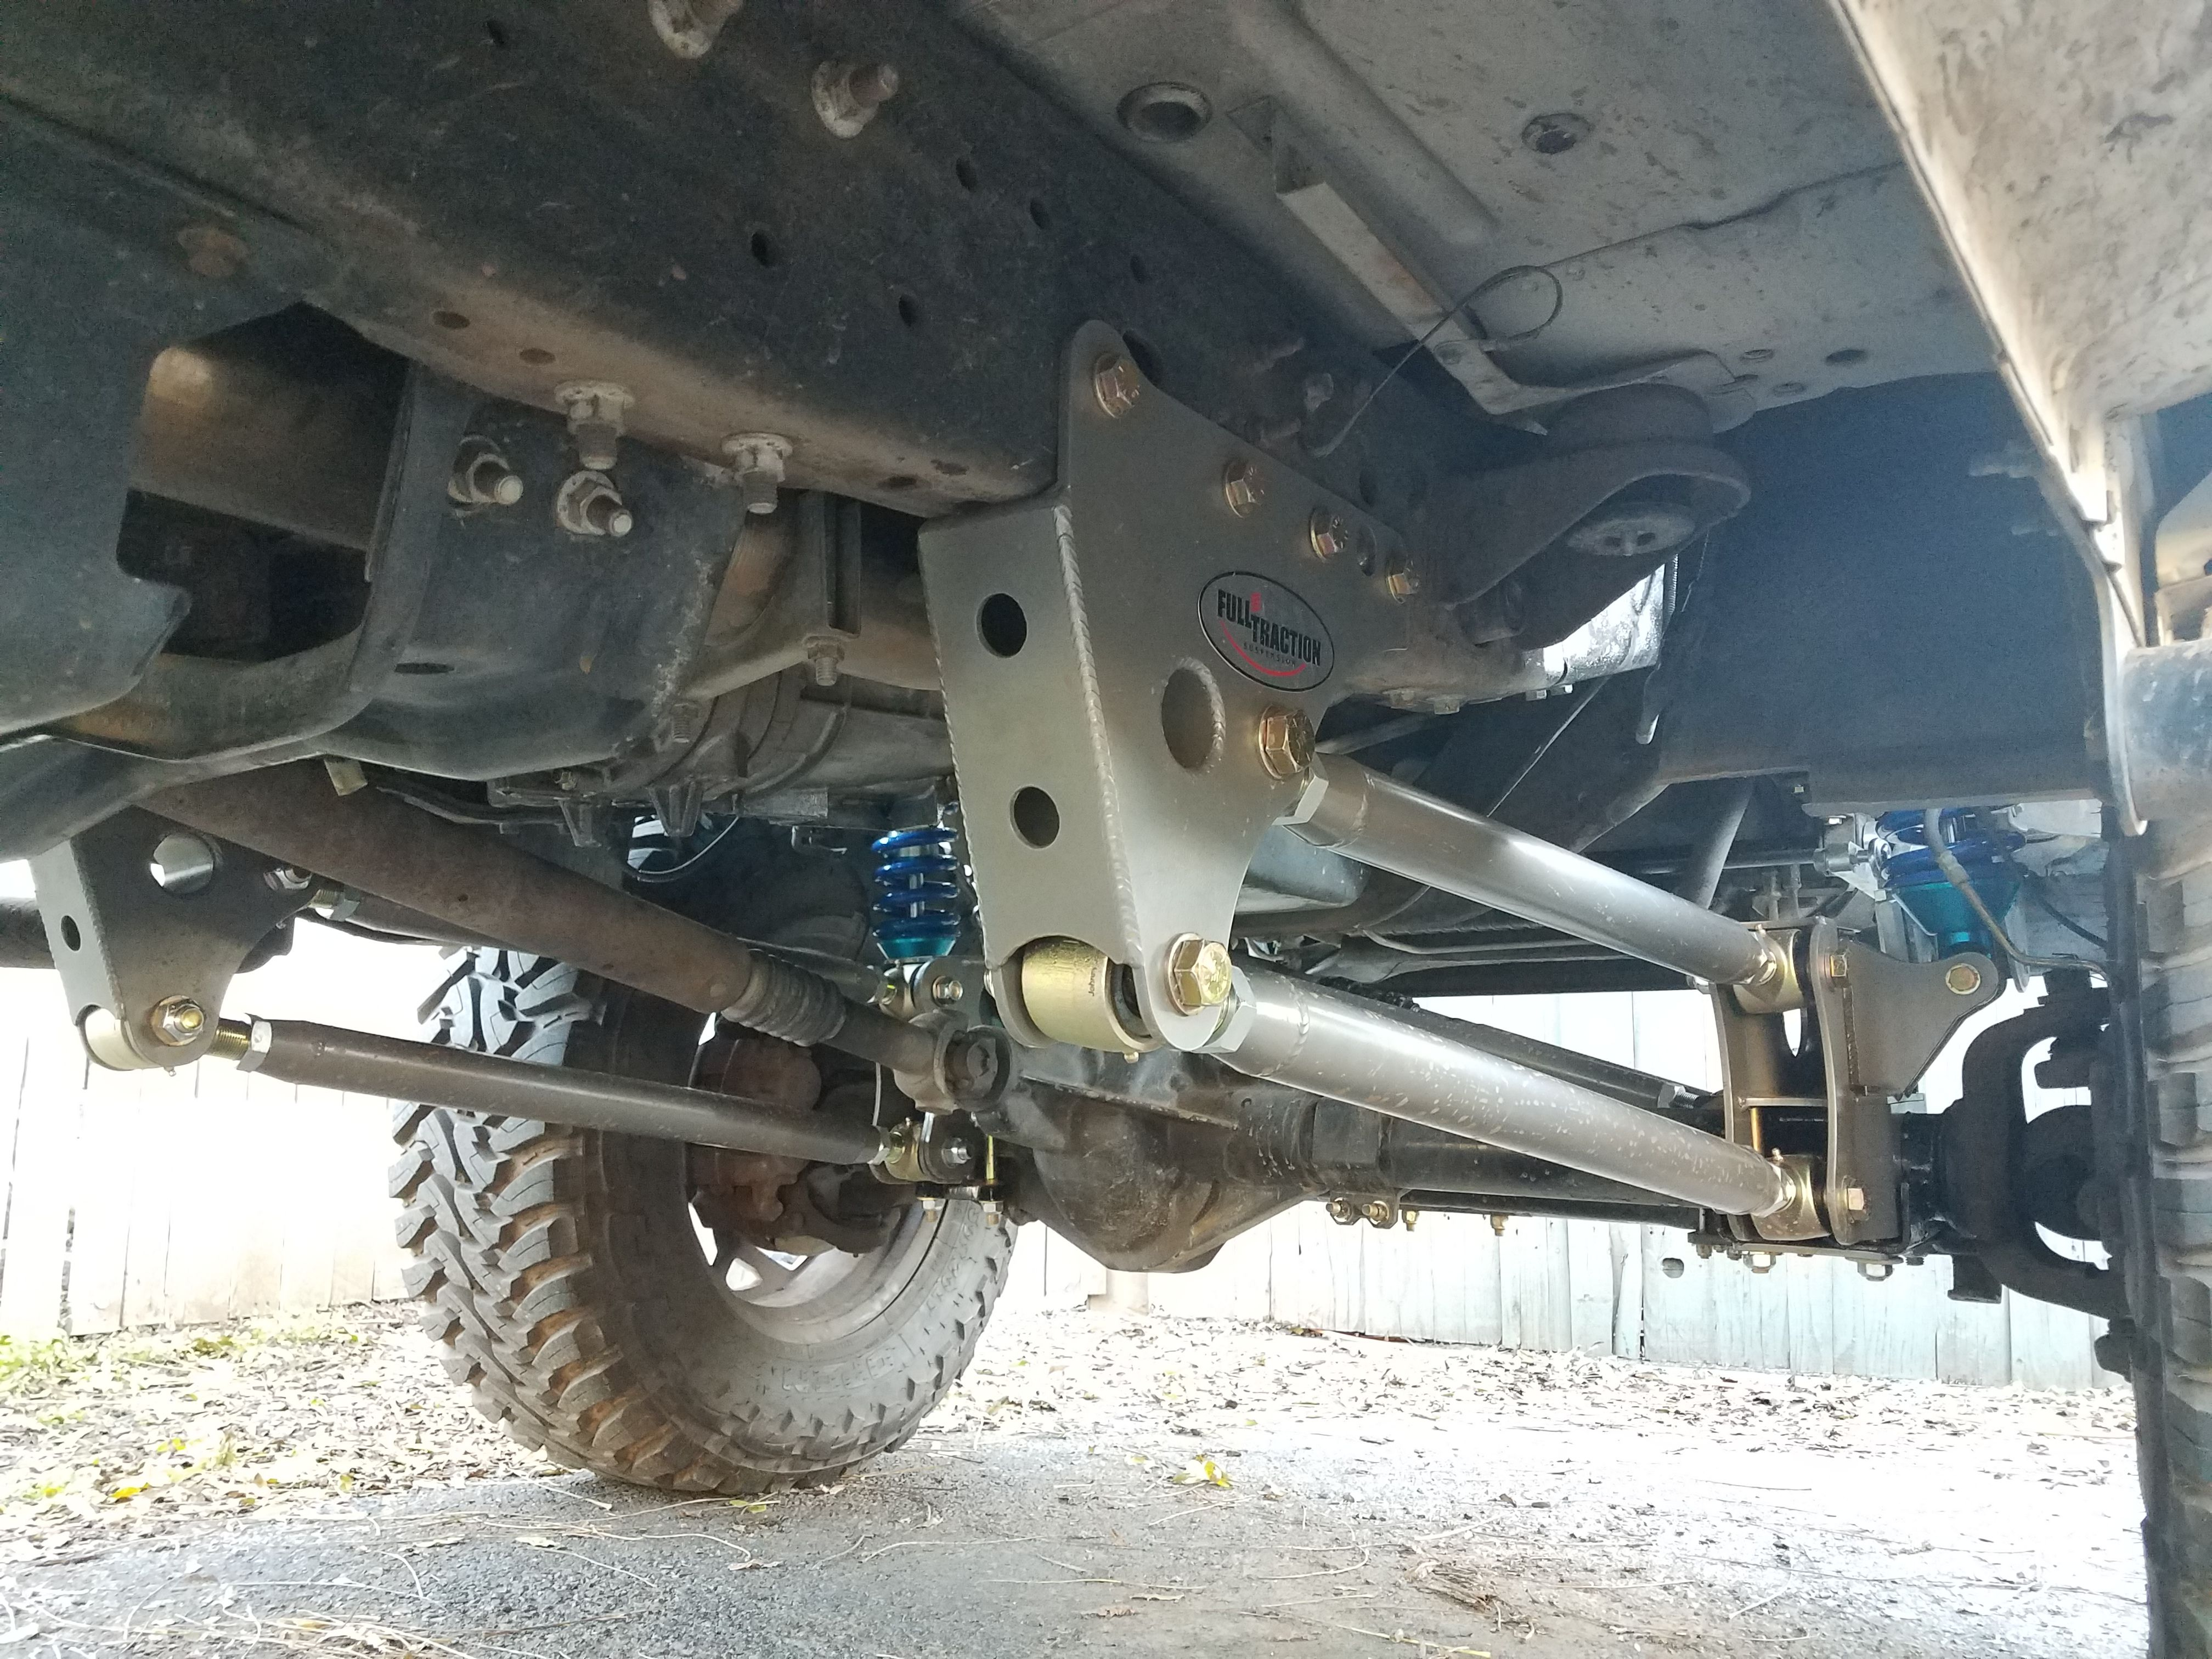 medium resolution of 1999 2000 2001 2002 2003 f250 f350 7 3l 6 0 diesel excursion super duty leaf spring delete 4 link king coil over conversion full traction toyo mt 37 bmf